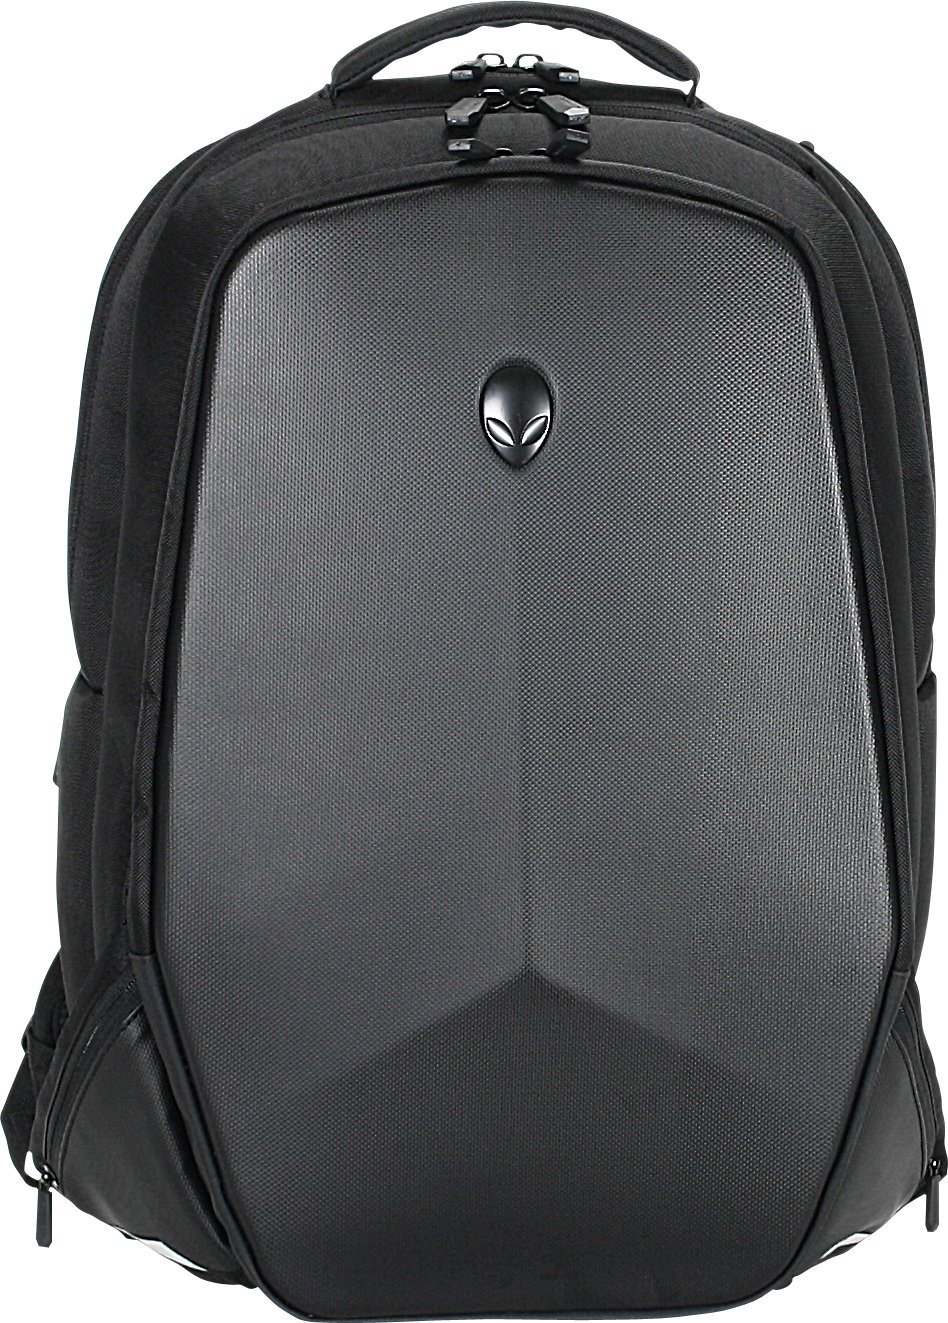 Alienware Vindicator Backpack For 14 Inch Laptop